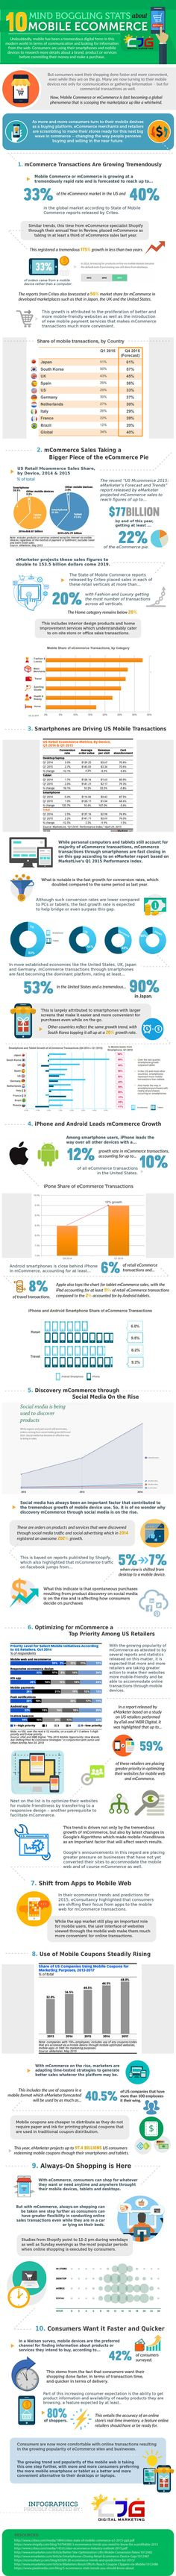 Mobile Commerce Stats. mCommerce is a global phenomena. #Infographic